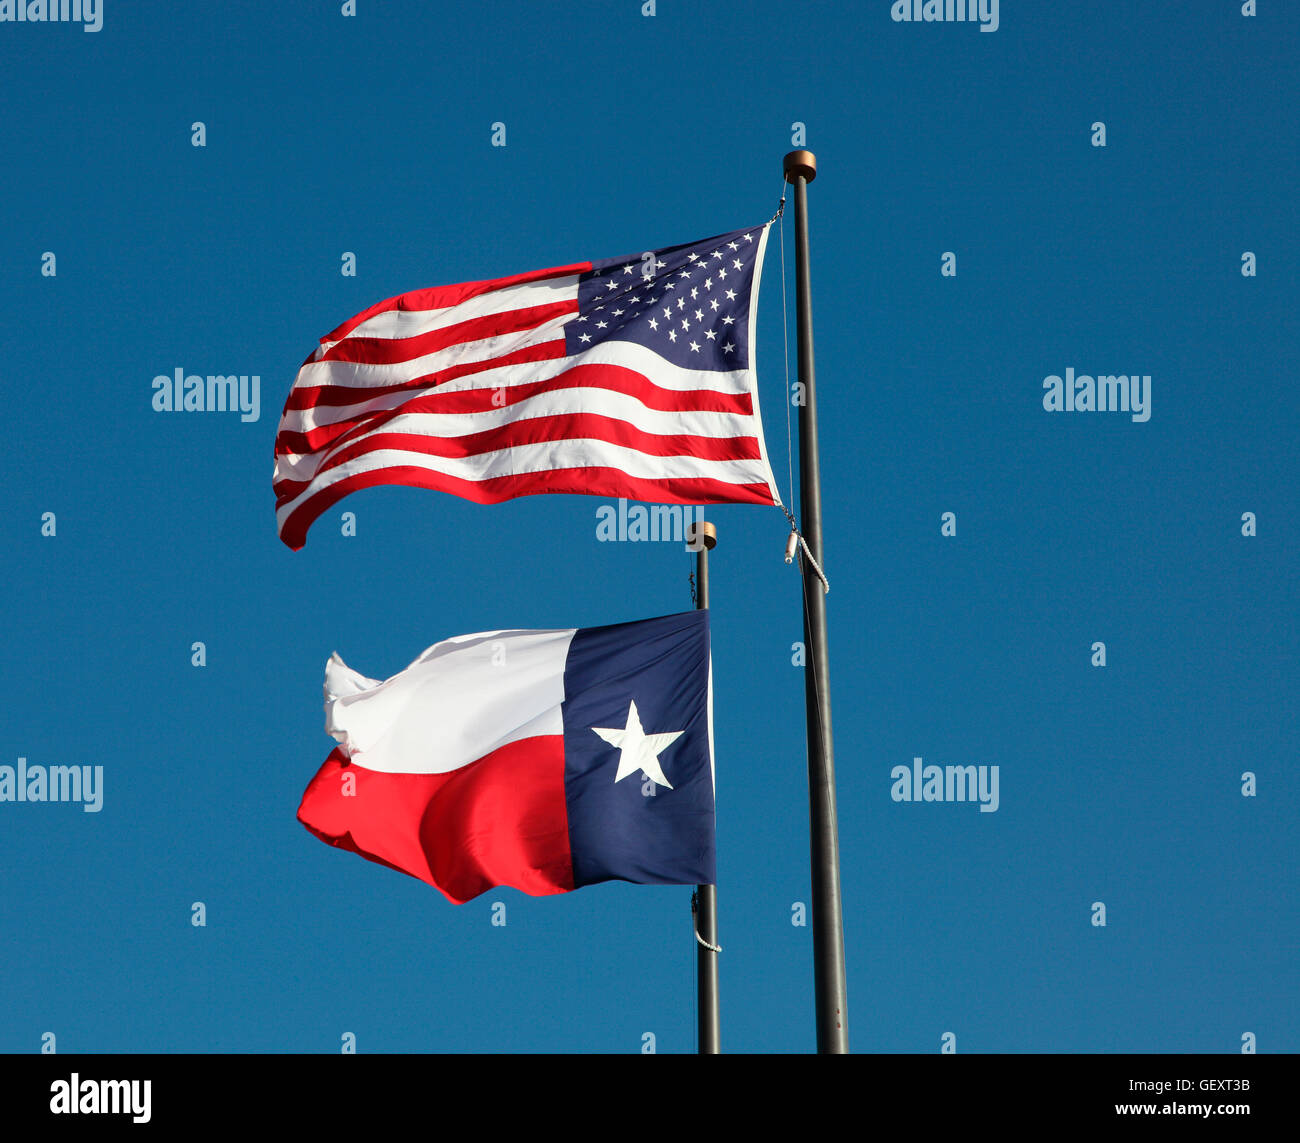 American flag and Texas flag flying at the  LBJ Library in Austin. Stock Photo